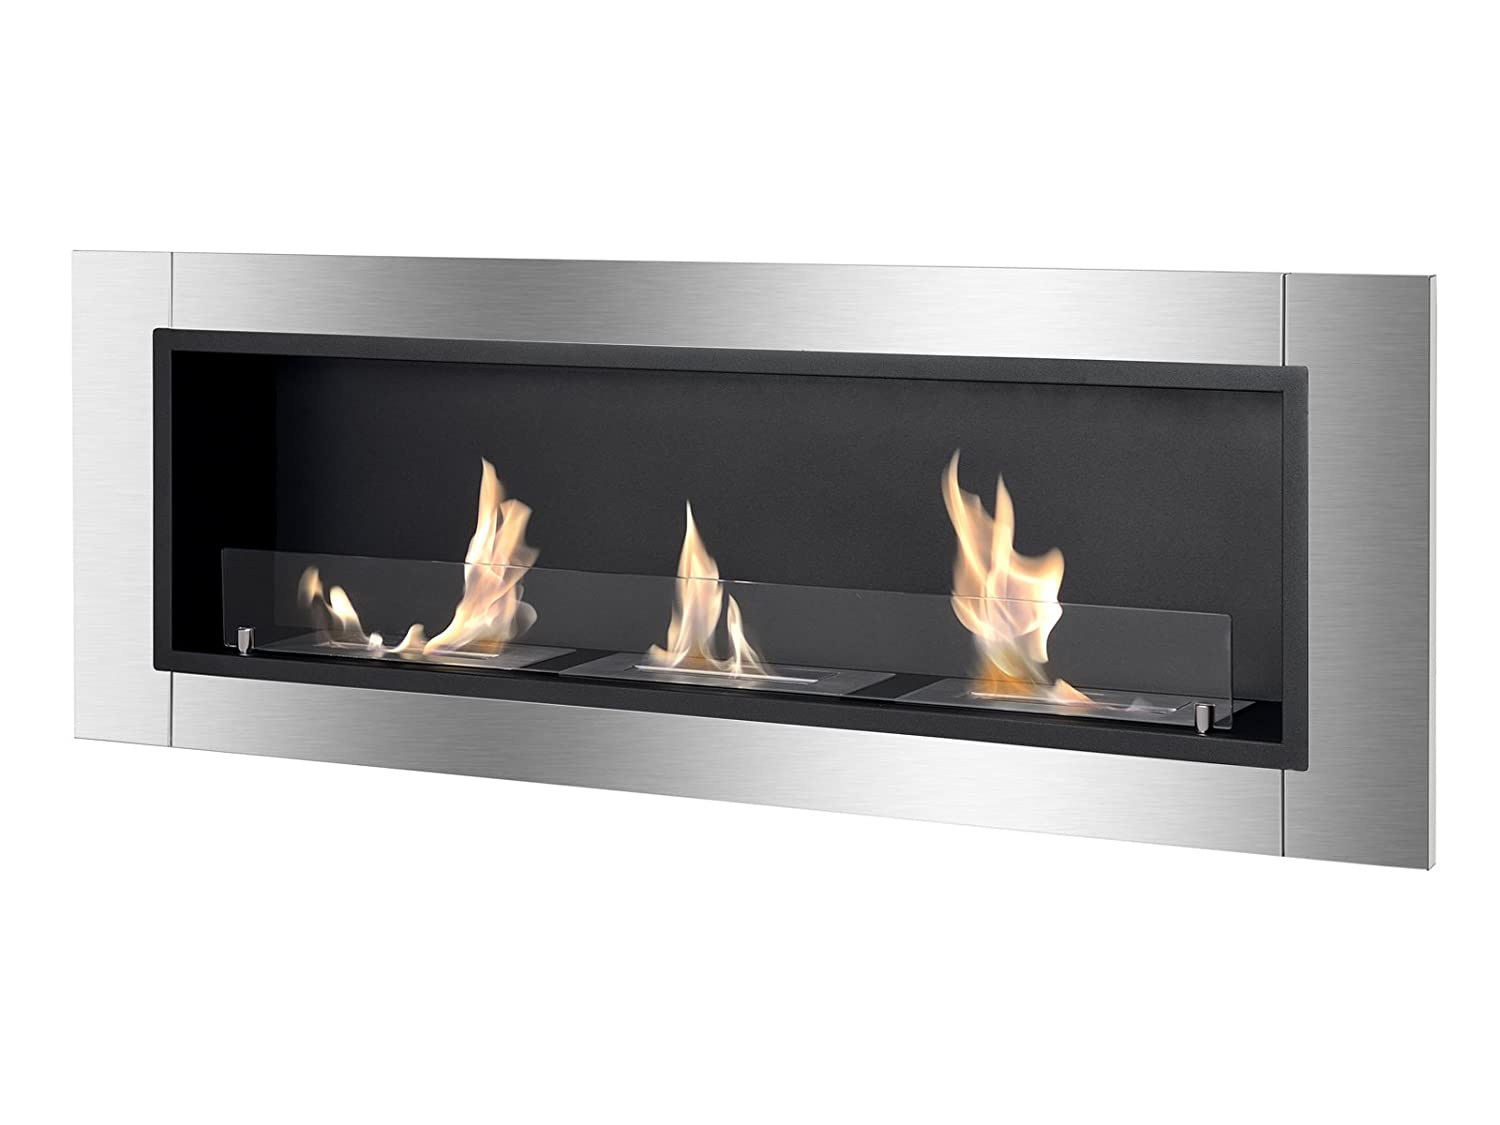 Amazoncom Ignis Ventless Bio Ethanol Fireplace Ardella With Safety